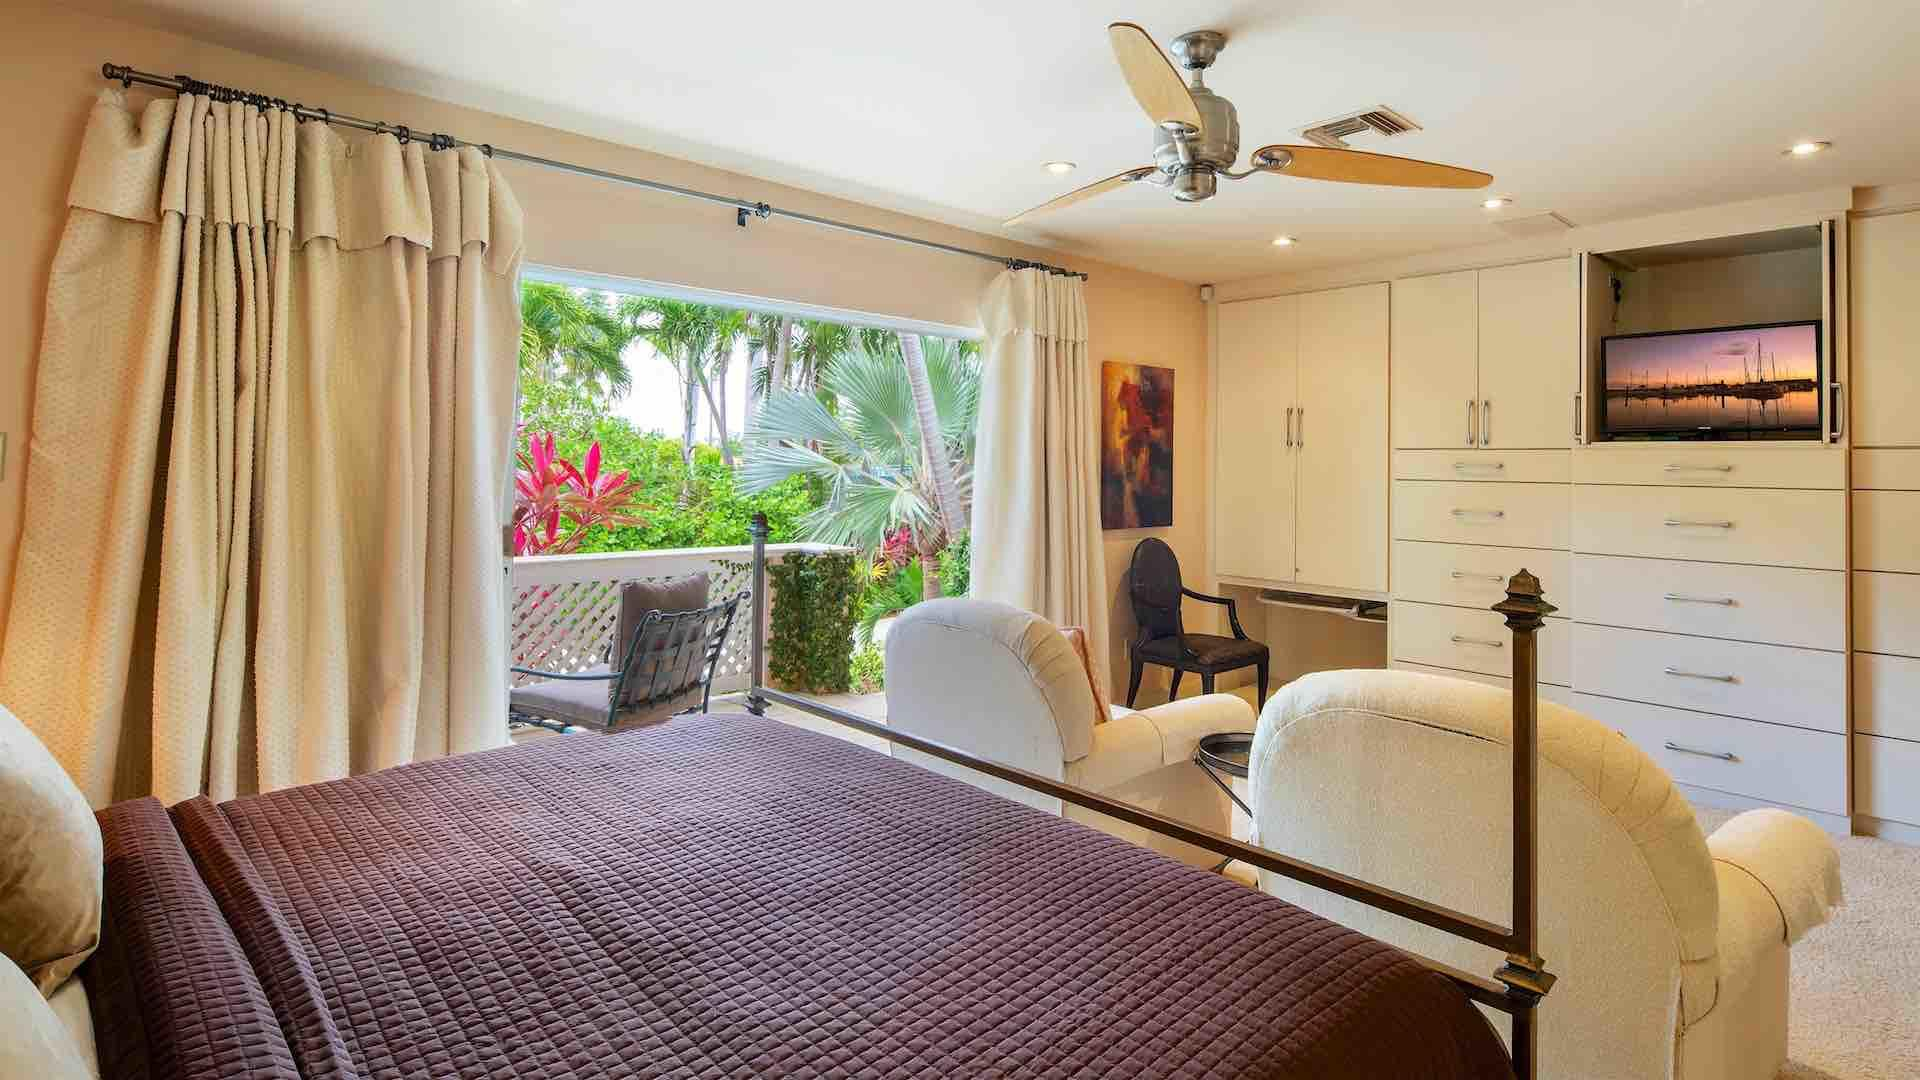 The first master bedroom suite has a King bed and sliding doors to a balcony…